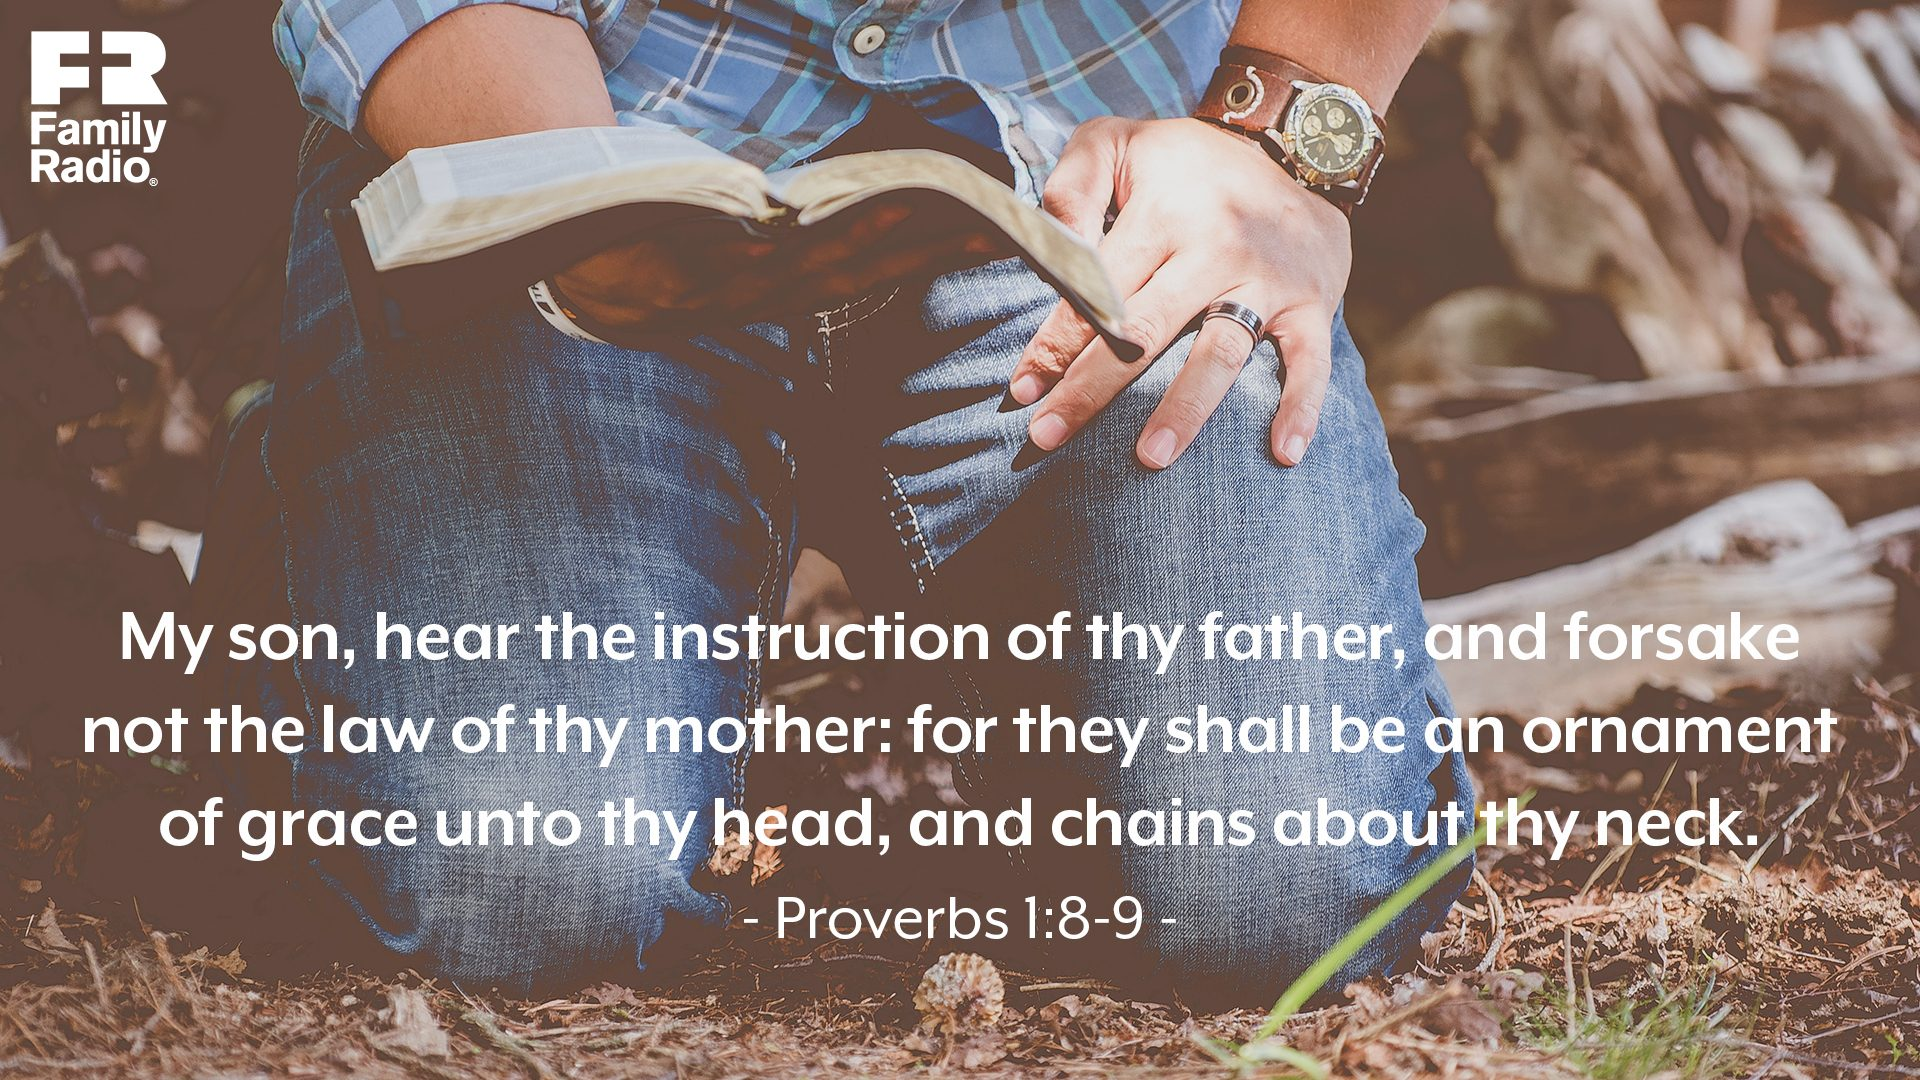 """My son, hear the instruction of thy father, and forsake not the law of thy mother: For they shall be an ornament of grace unto thy head, and chains about thy neck."""